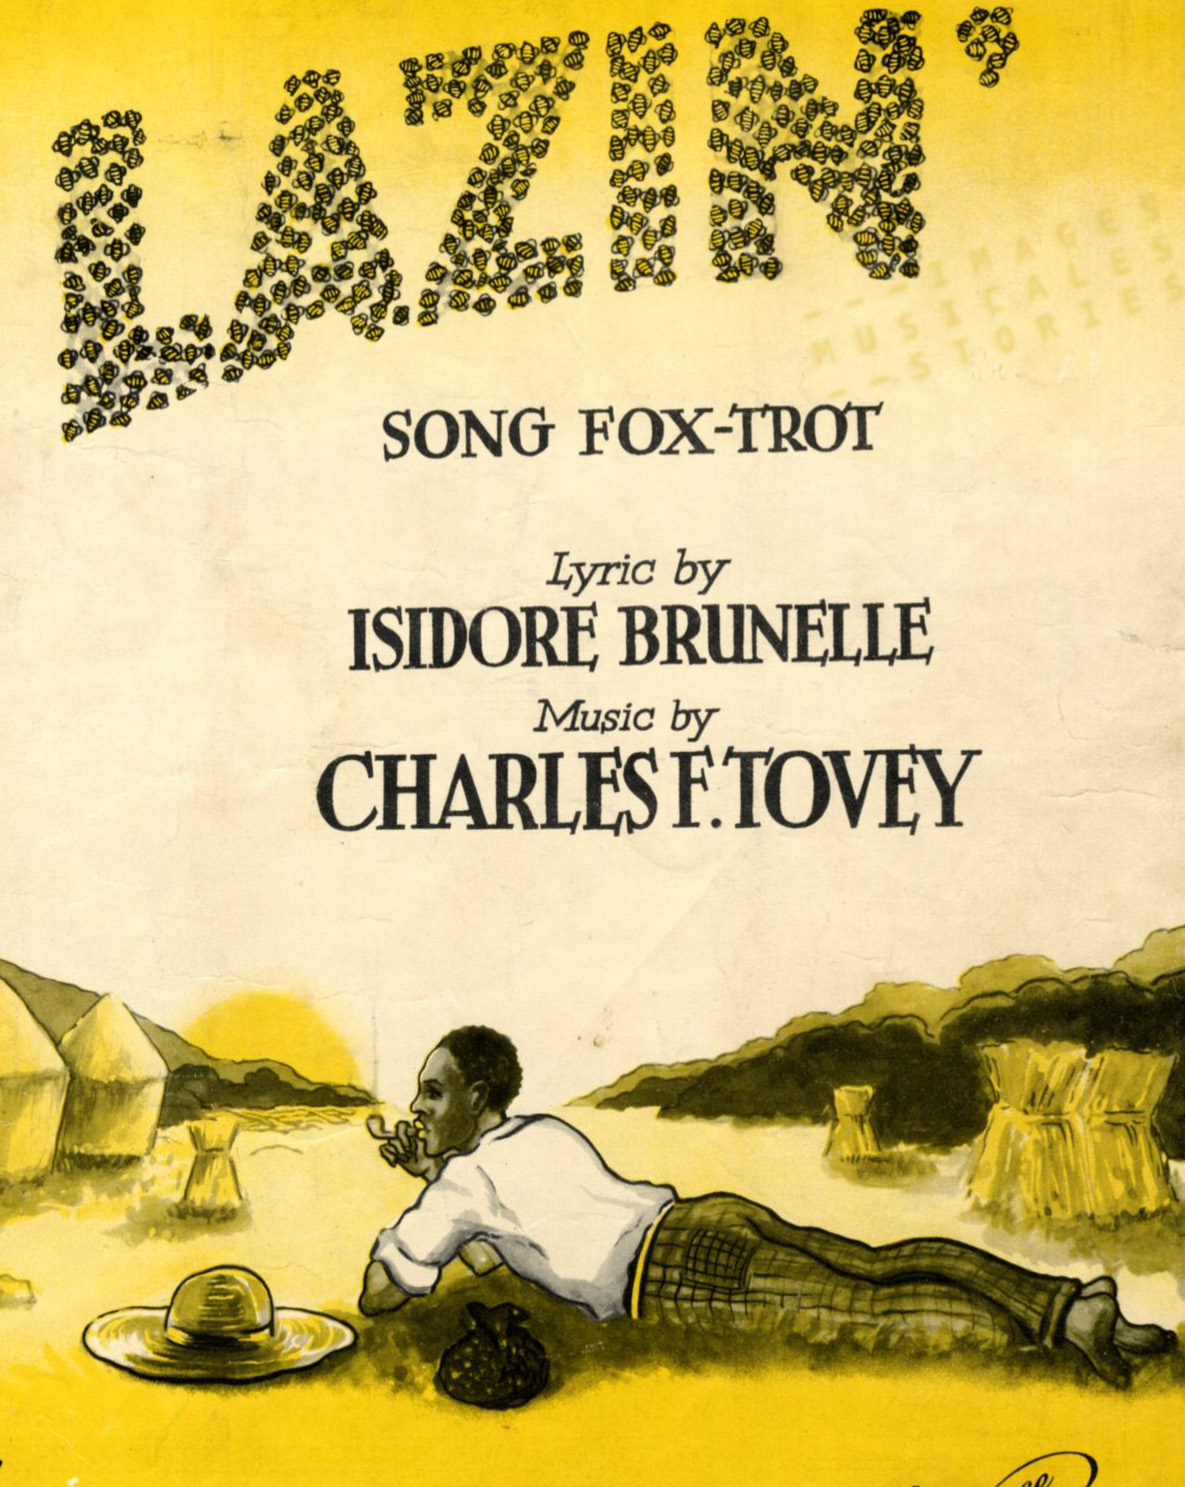 Lazin', Sheet music (Lazin', partition illustrée)